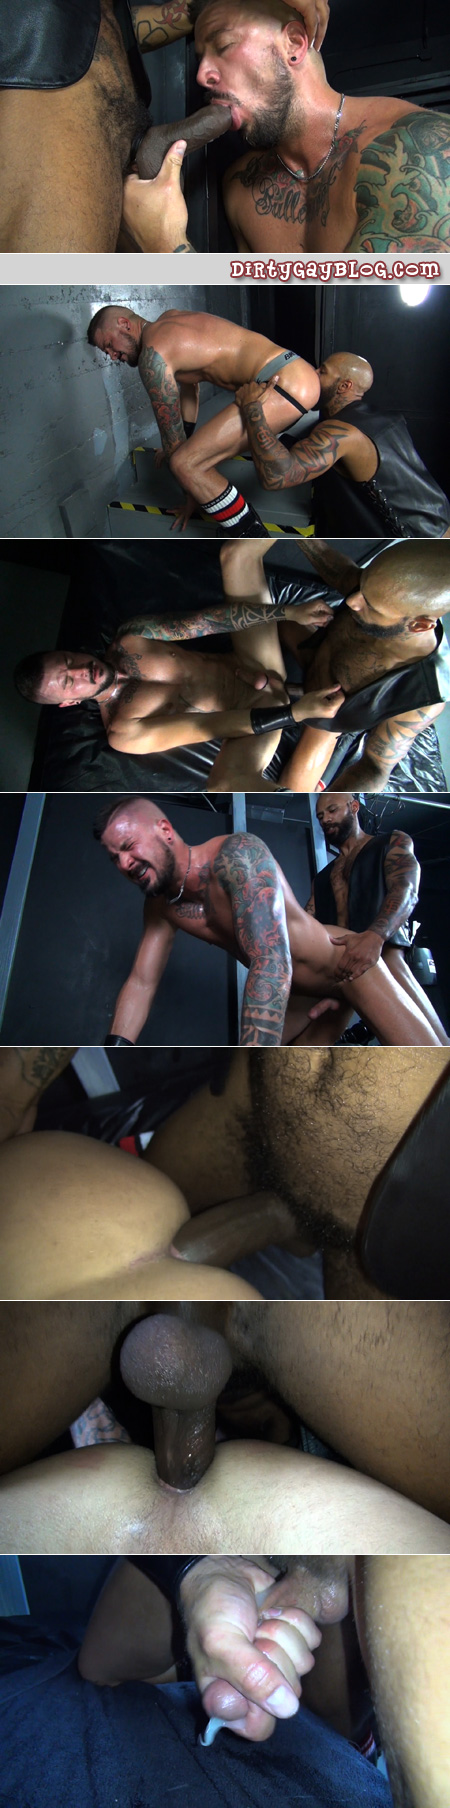 Inked interracial men in leather sucking and fucking bareback.